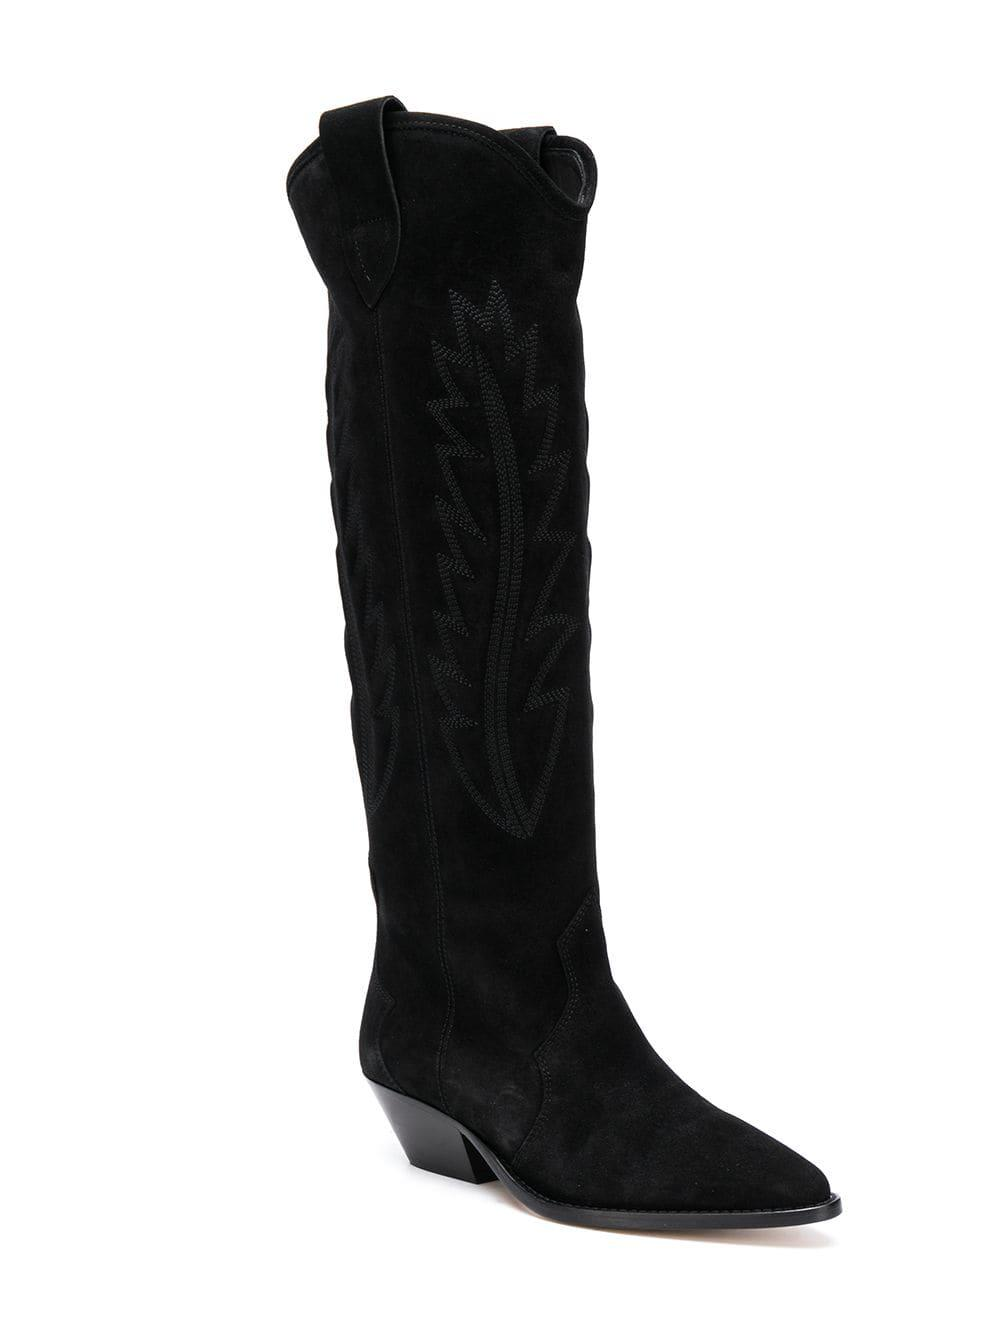 Isabel Marant Leather Denzy High Boots in Black